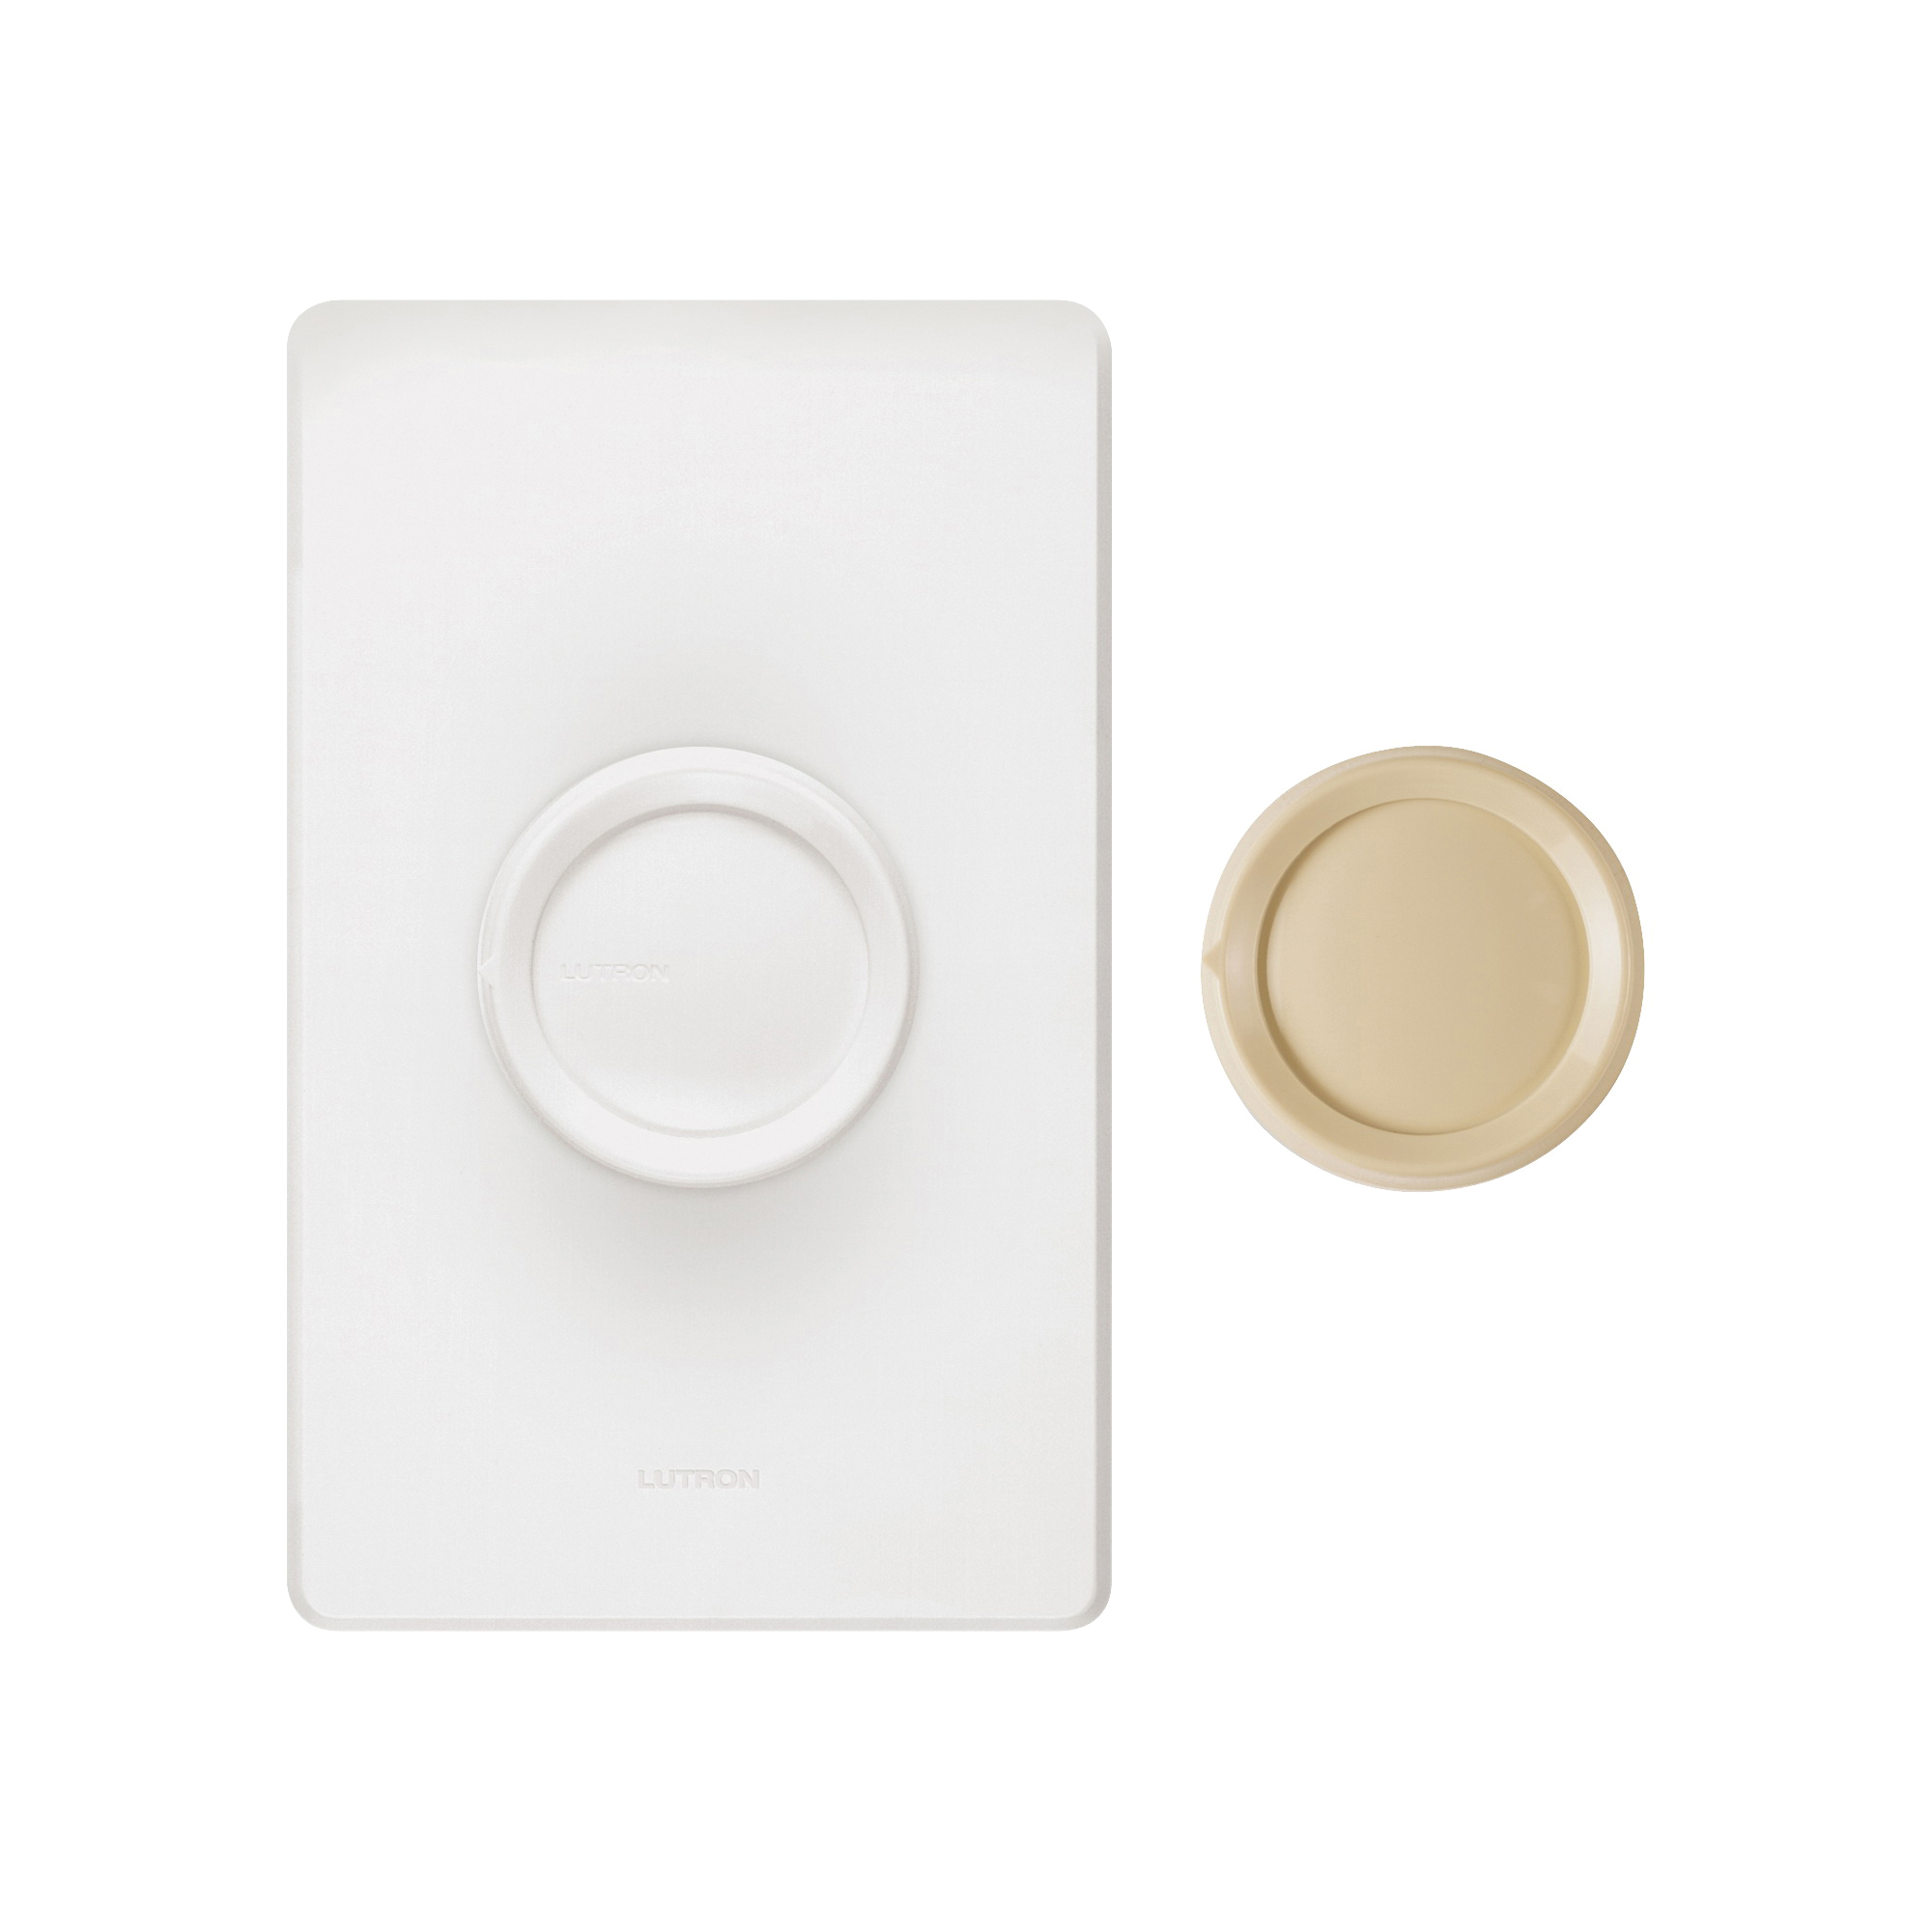 Picture of Lutron DNG-600PH-DK Rotary Dimmer, 120 V, 600 W, Halogen, Incandescent Lamp, Ivory/White